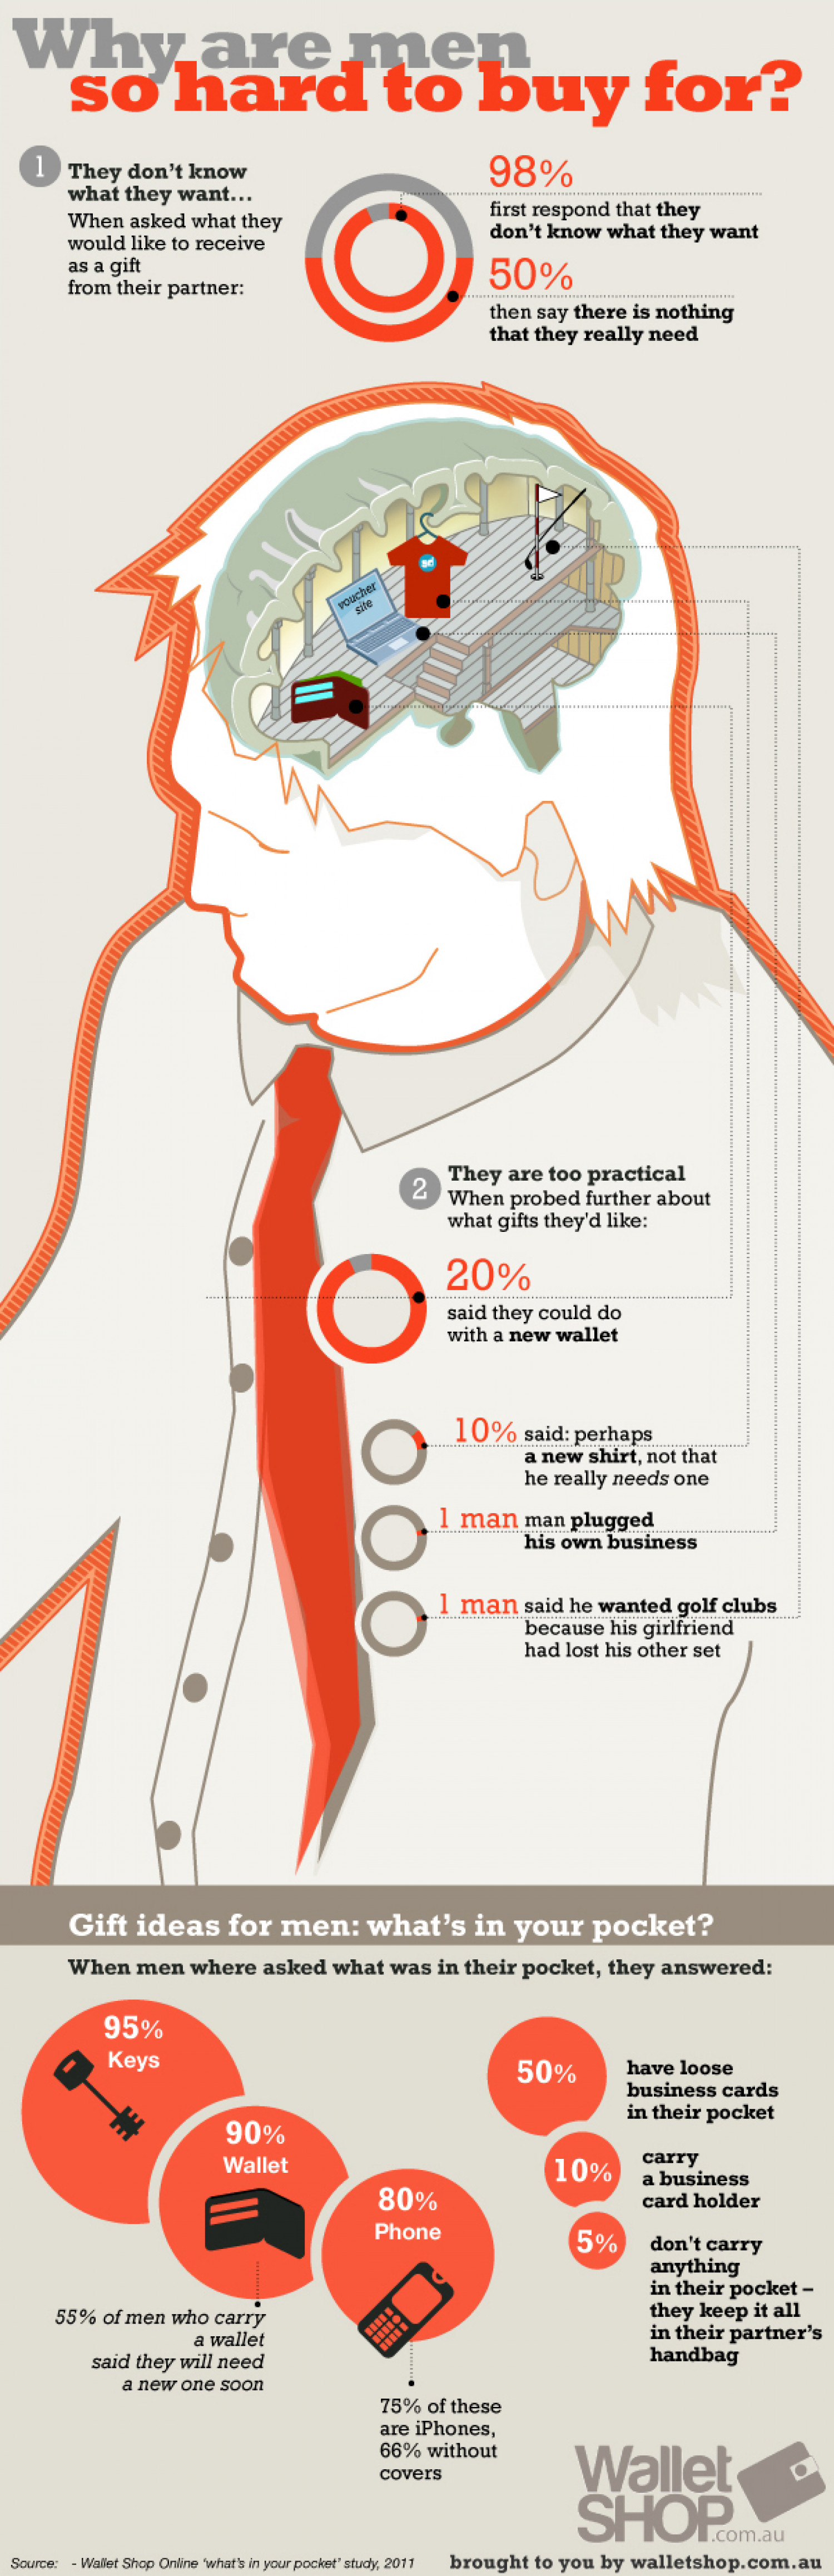 Why Are Men So Hard to Buy For? Infographic